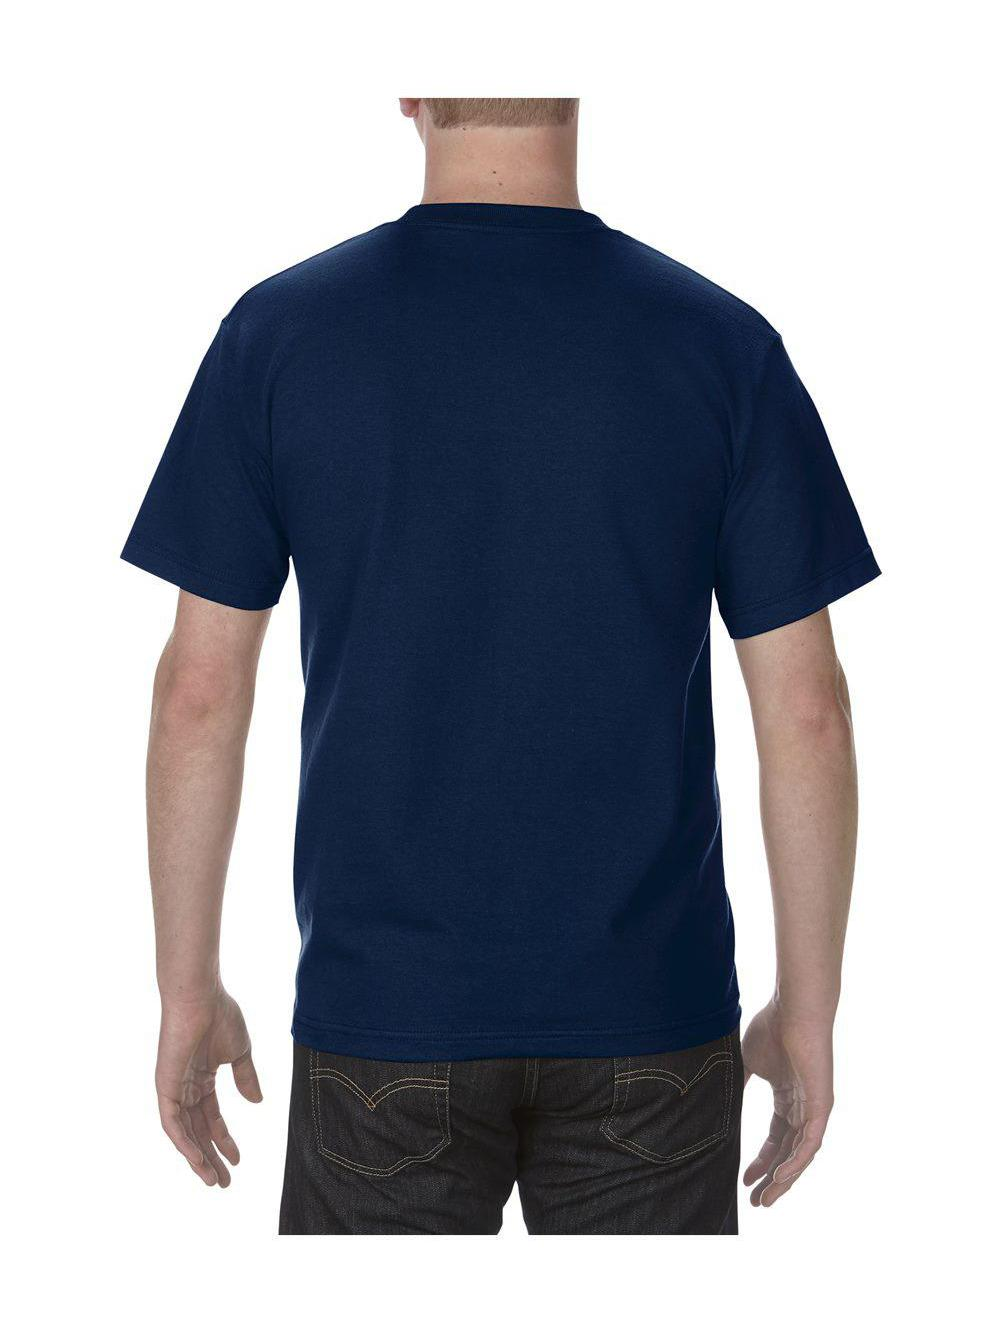 ALSTYLE-Classic-T-Shirt-1301 thumbnail 53